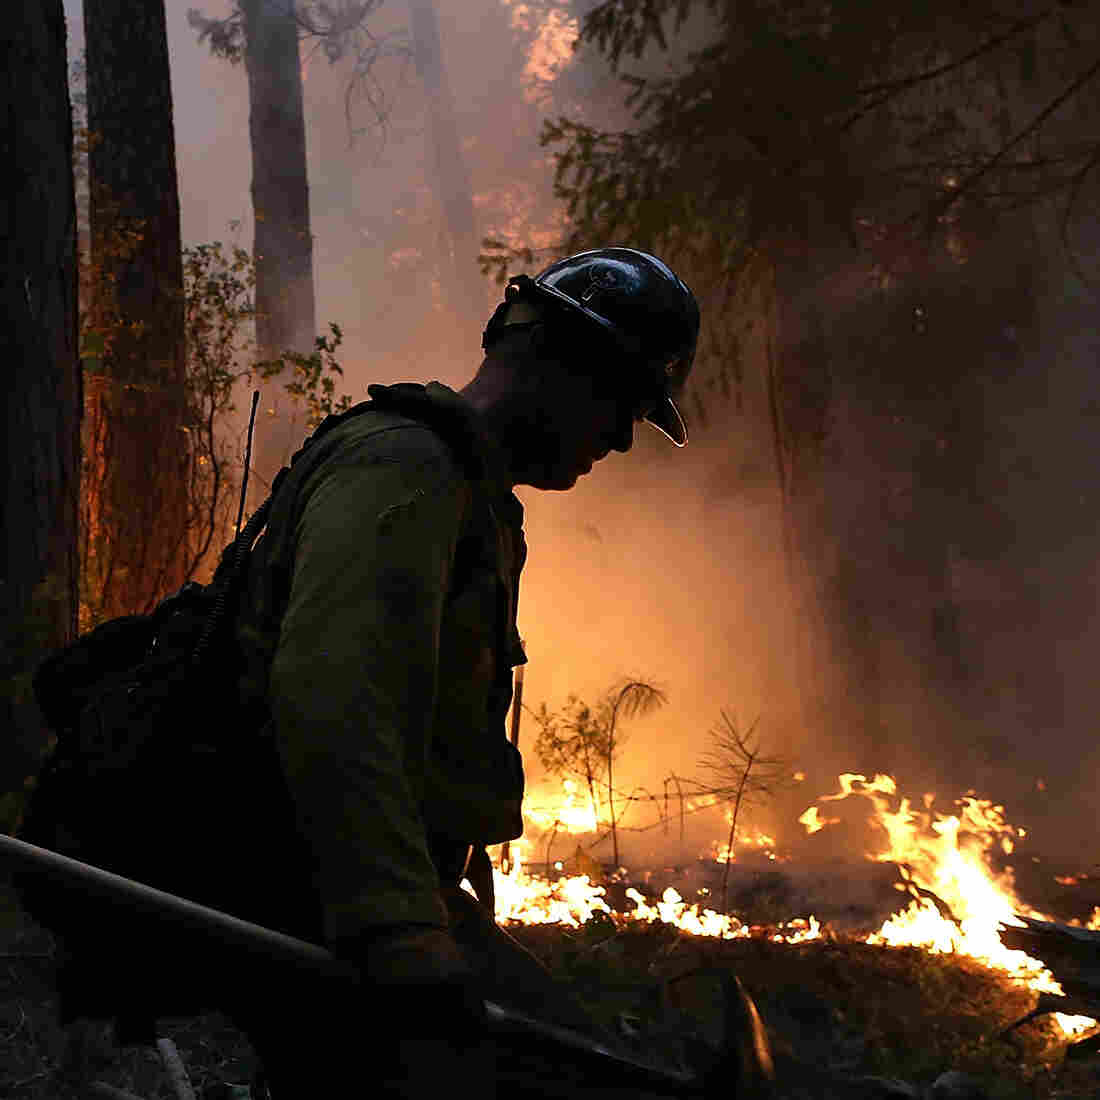 A Colorado-based firefighter monitors a backfire while battling the Rim Fire in Groveland, Calif., on Thursday. The Rim Fire continues to burn out of control and has grown to more than 105,000 acres, officials said Friday.